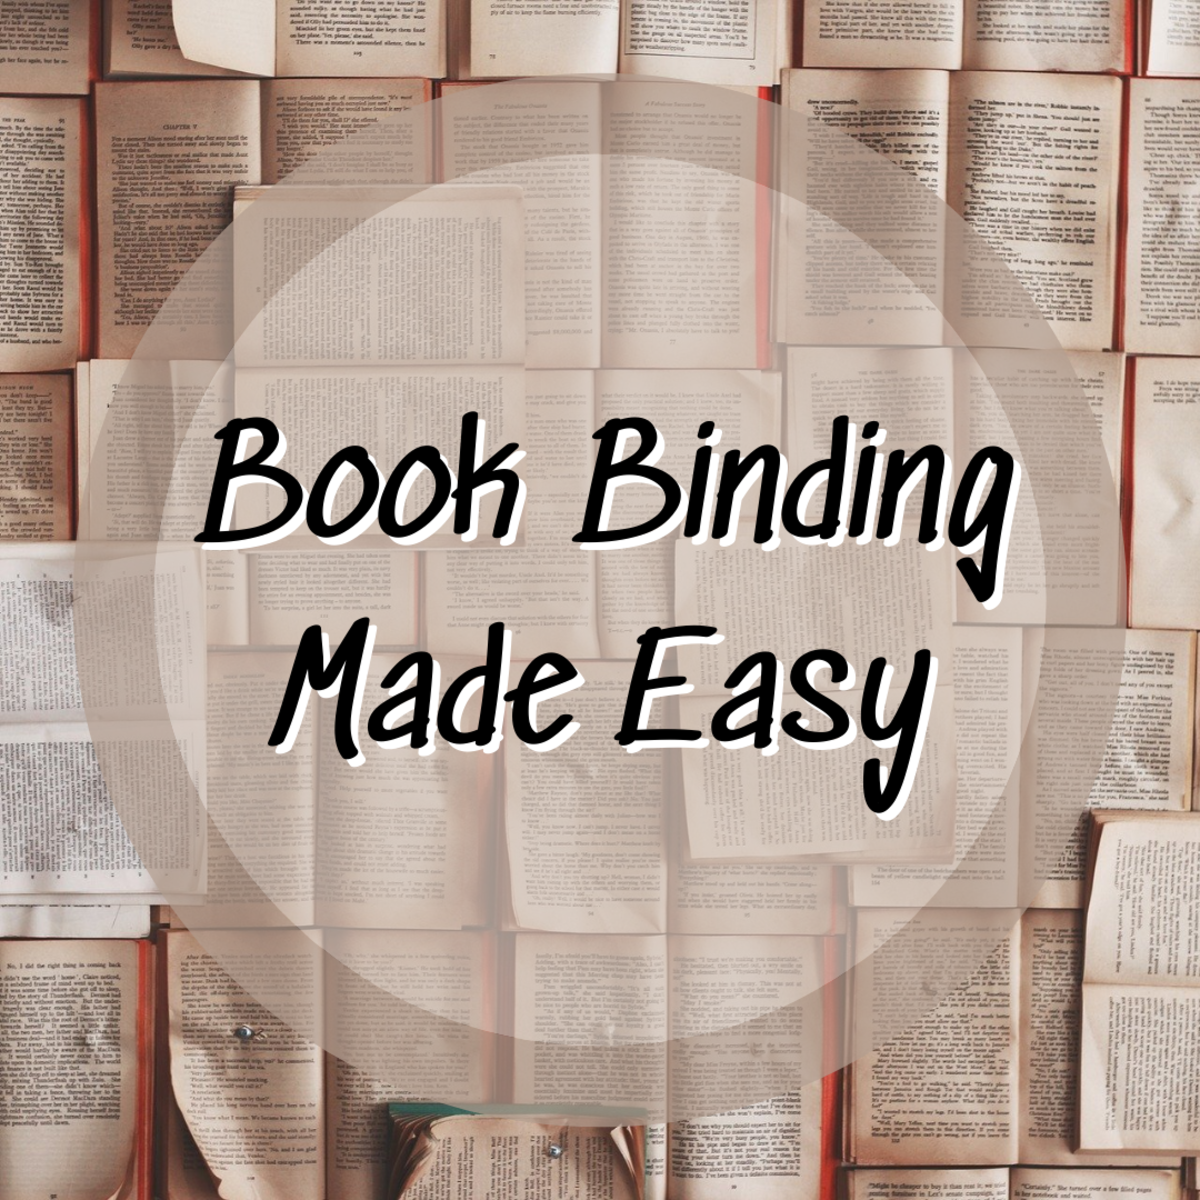 This step-by-step tutorial teaches you how to bind a manuscript!